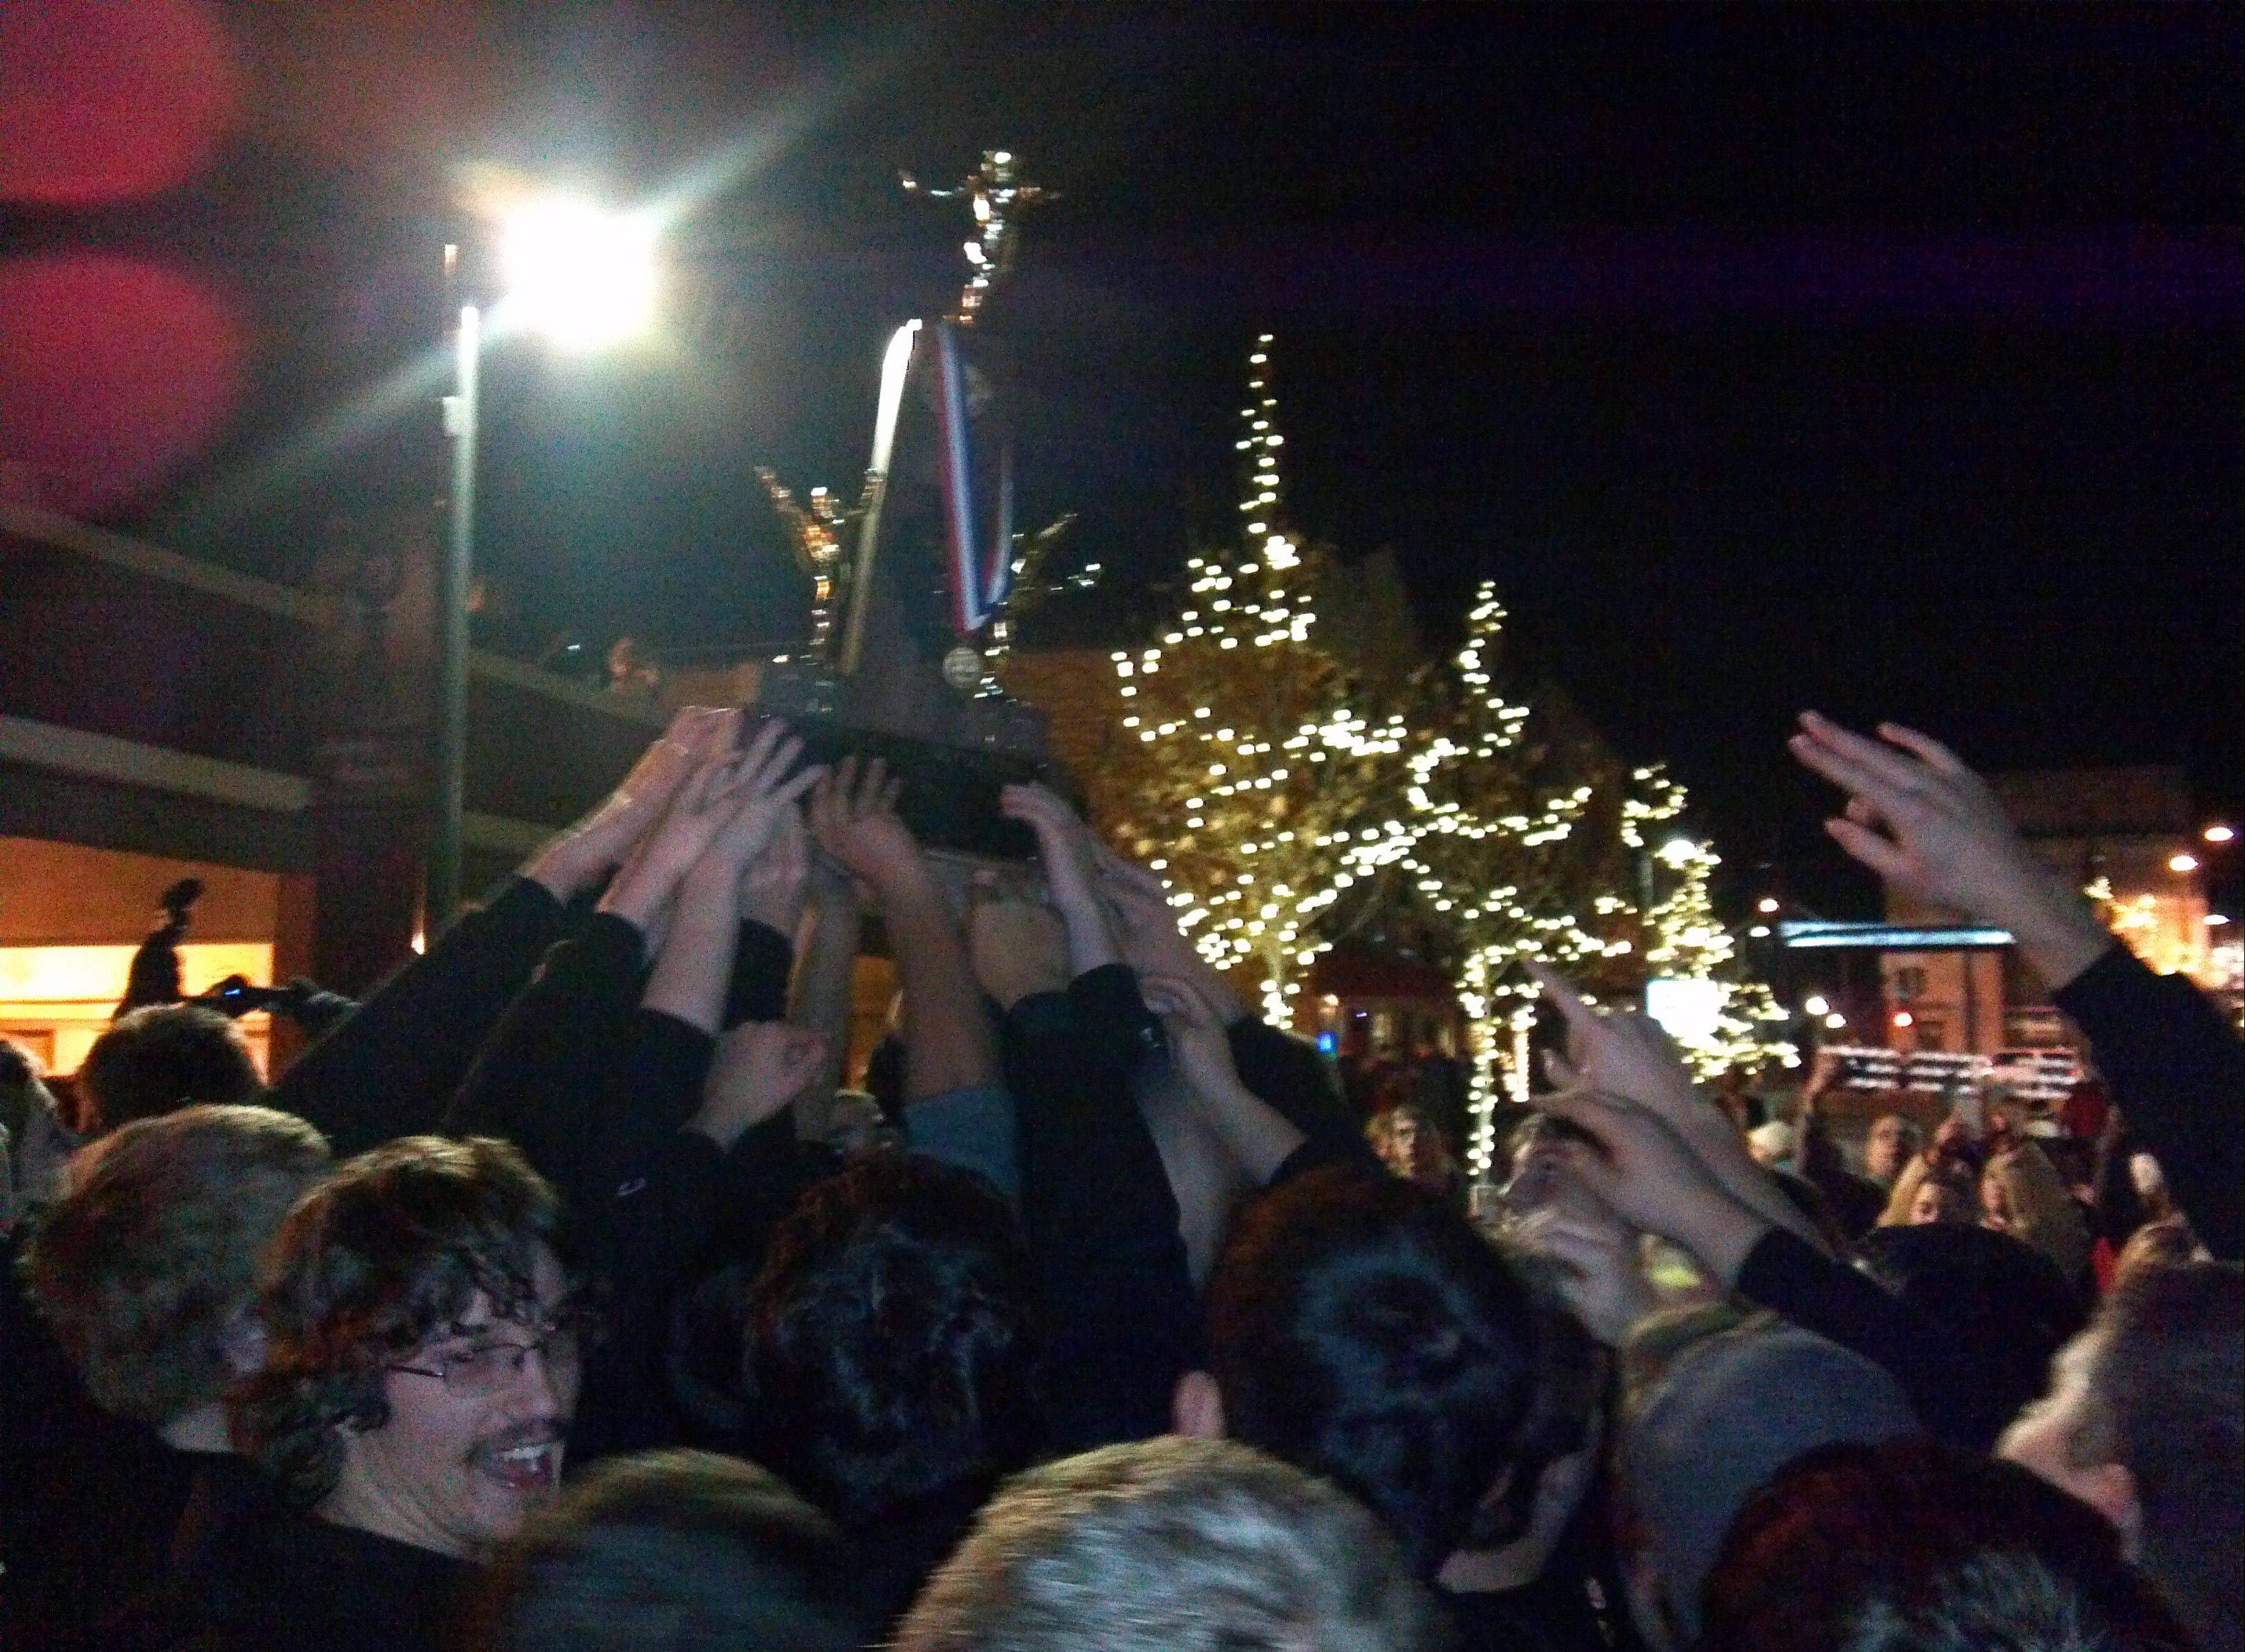 Members of the Batavia High School football team brought the state championship trophy to a street party in downtown Batavia Saturday night. The title, the first for the football program, is the second in school history.